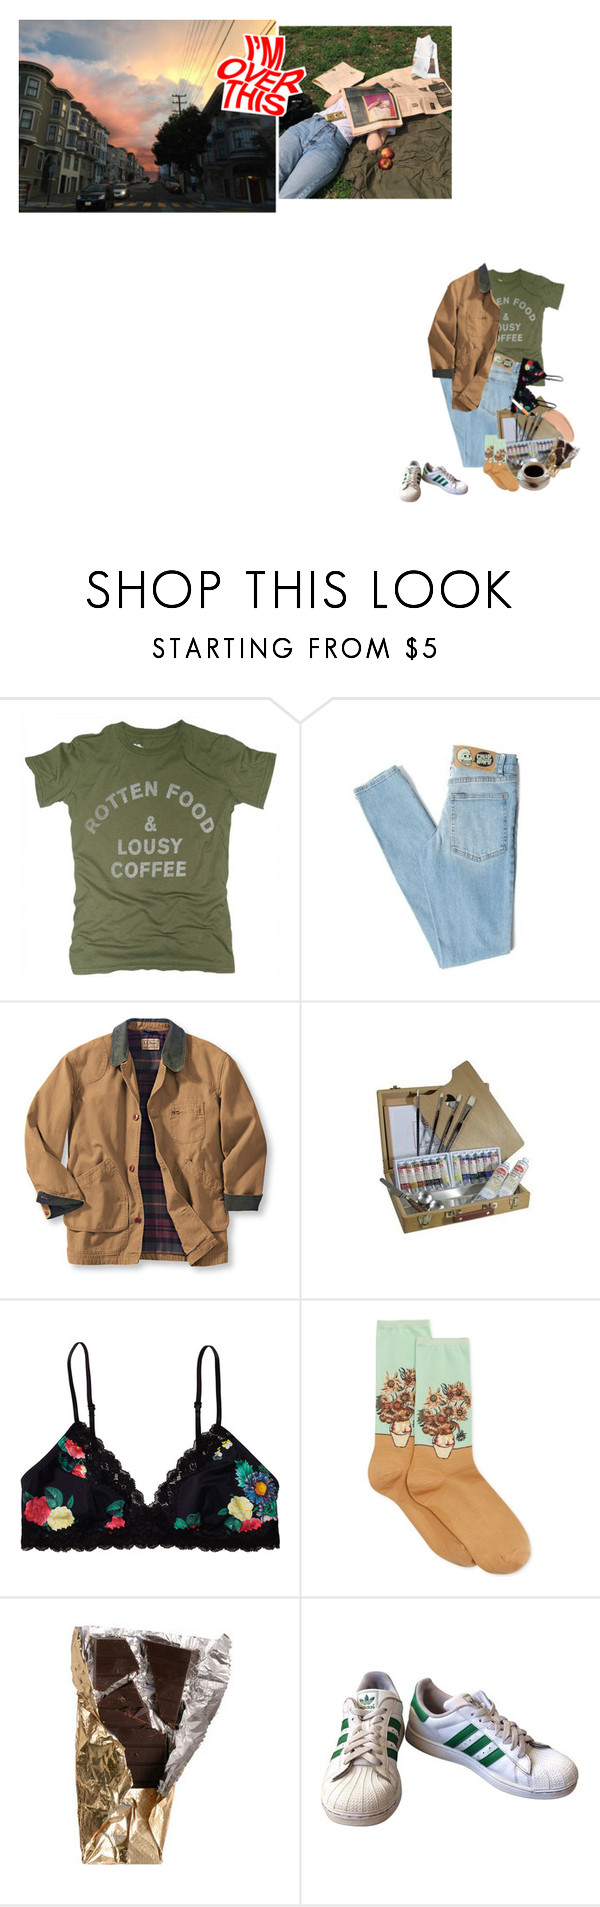 """""""coffee should fix that!"""" by foolish-luna ❤ liked on Polyvore featuring Worn Free, Cheap Monday, Monki, Forum, HOT SOX, adidas, Yves Saint Laurent and vintage"""